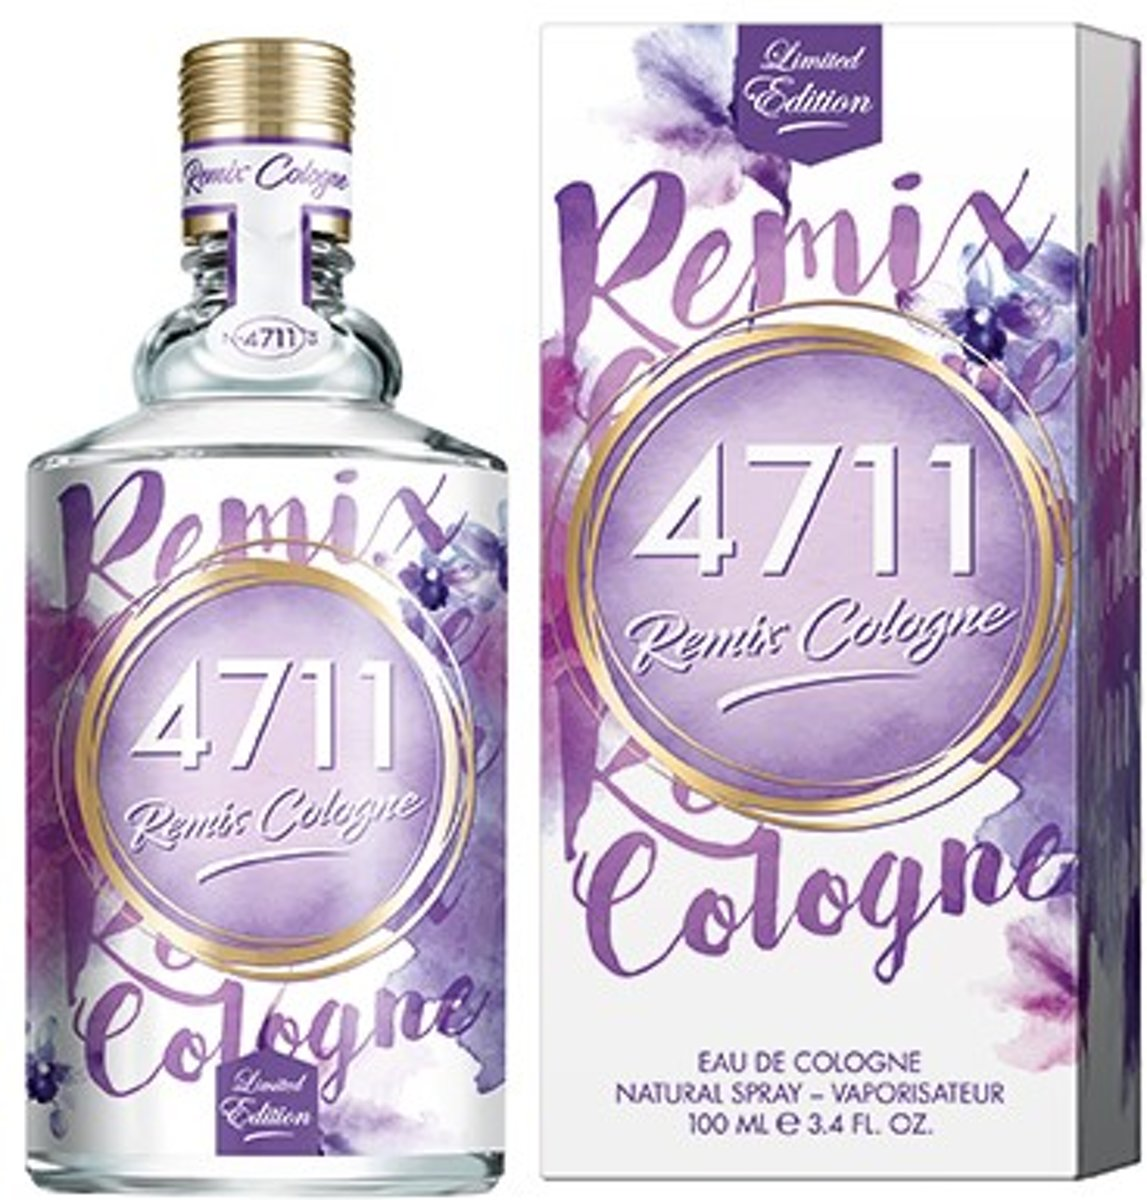 4711 Remix Cologne - Lavendel - edition 2019